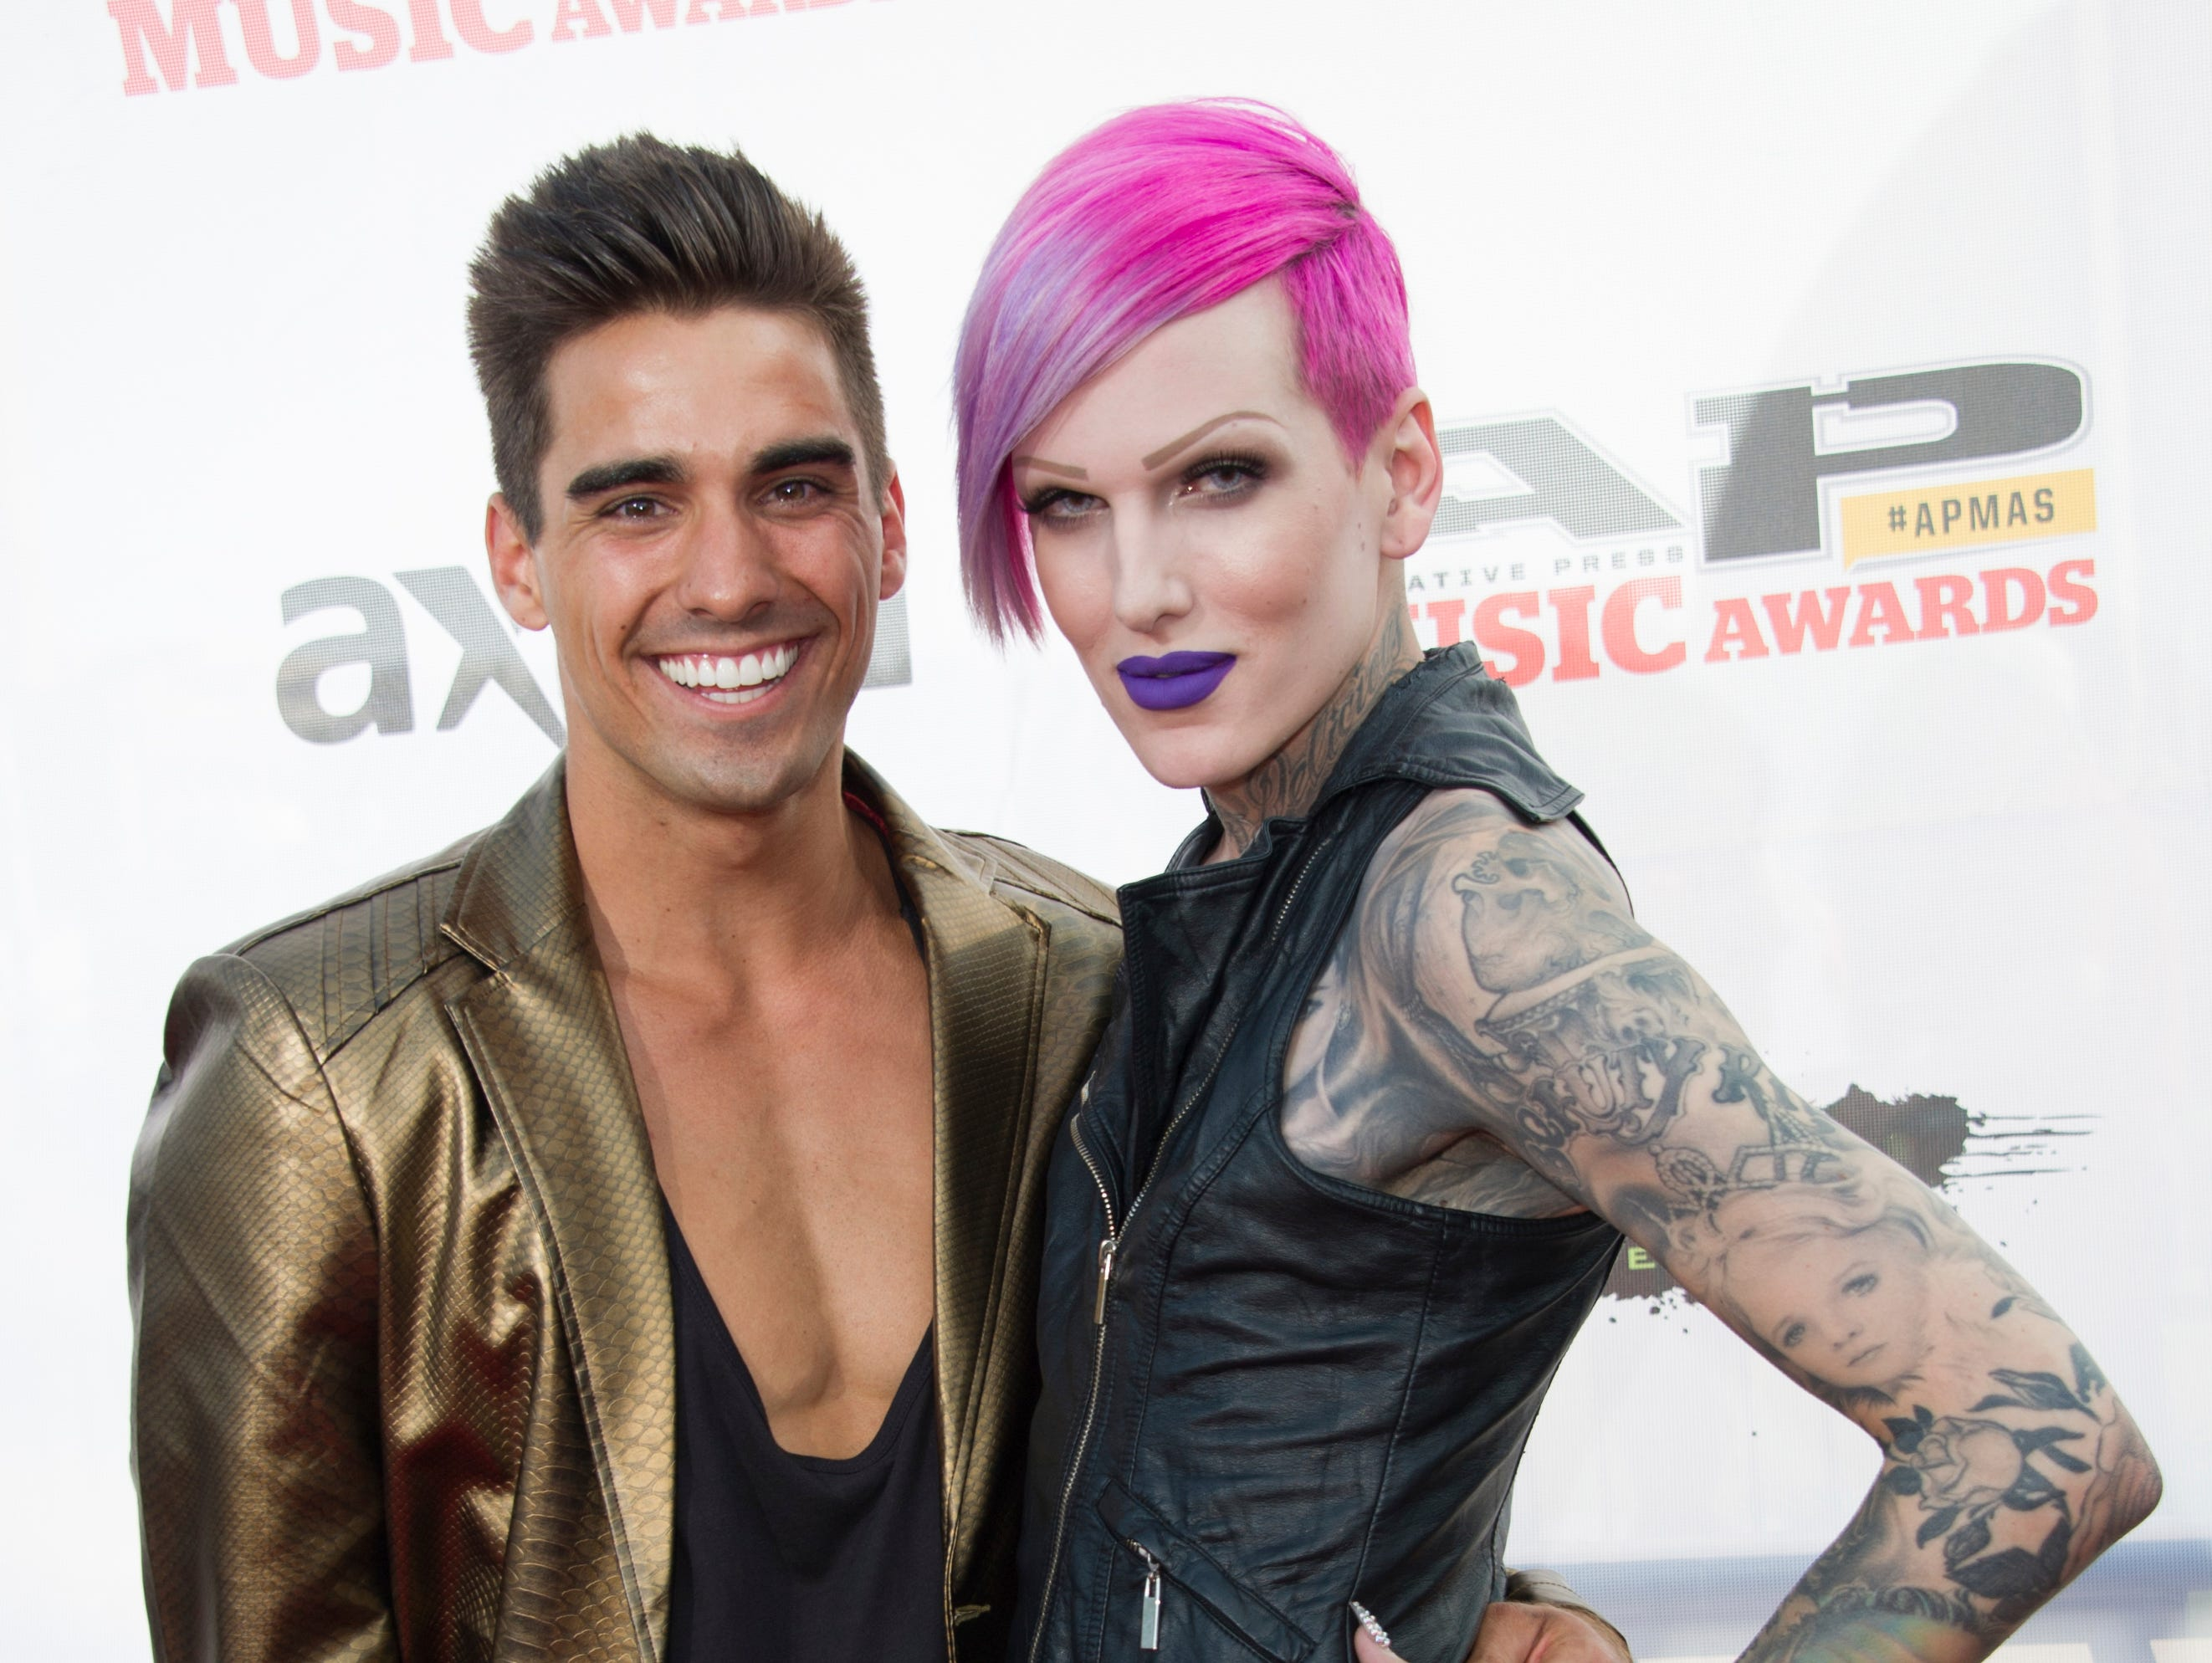 Jeffree Star, right, attends the 2014 AP Music Awards at the Rock And Roll Hall of Fame and Museum at North Coast Harbor on July 21, 2014, in Cleveland. (Photo by Amy Harris/Invision/AP)